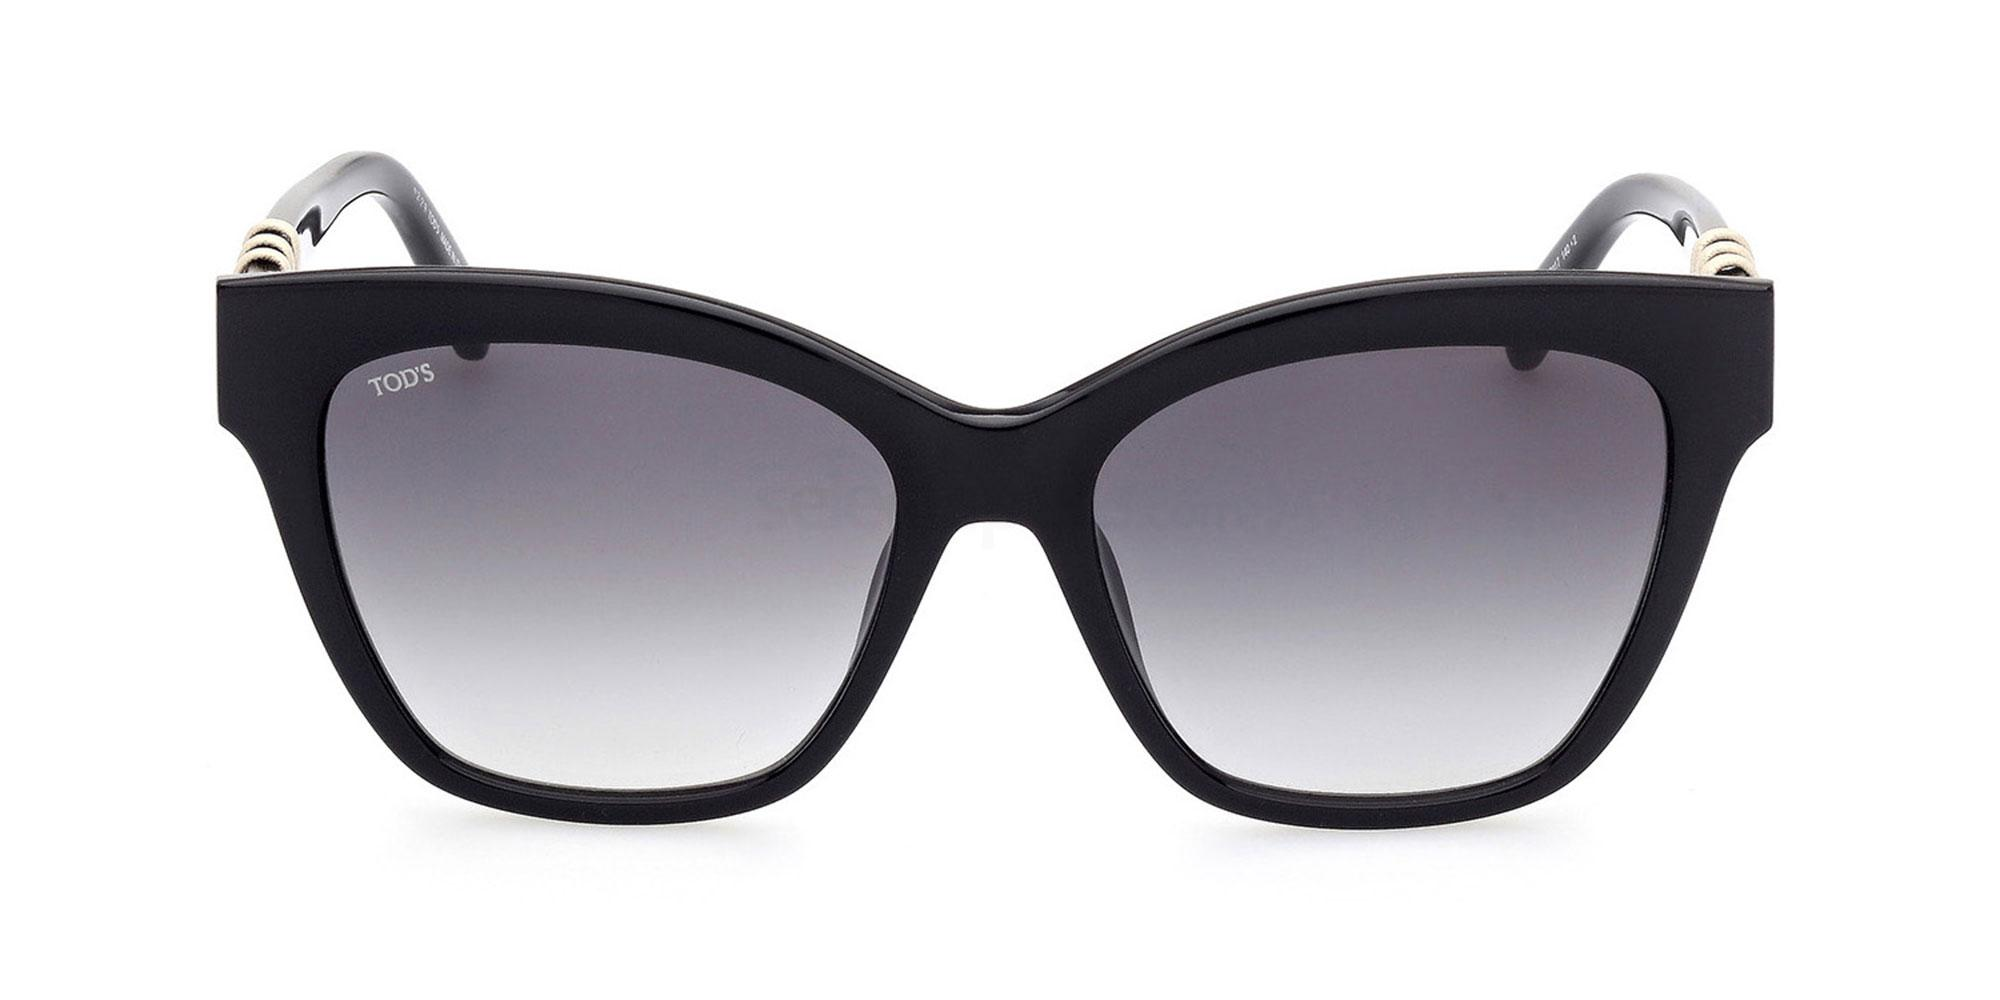 01B TO0274 Sunglasses, TODS